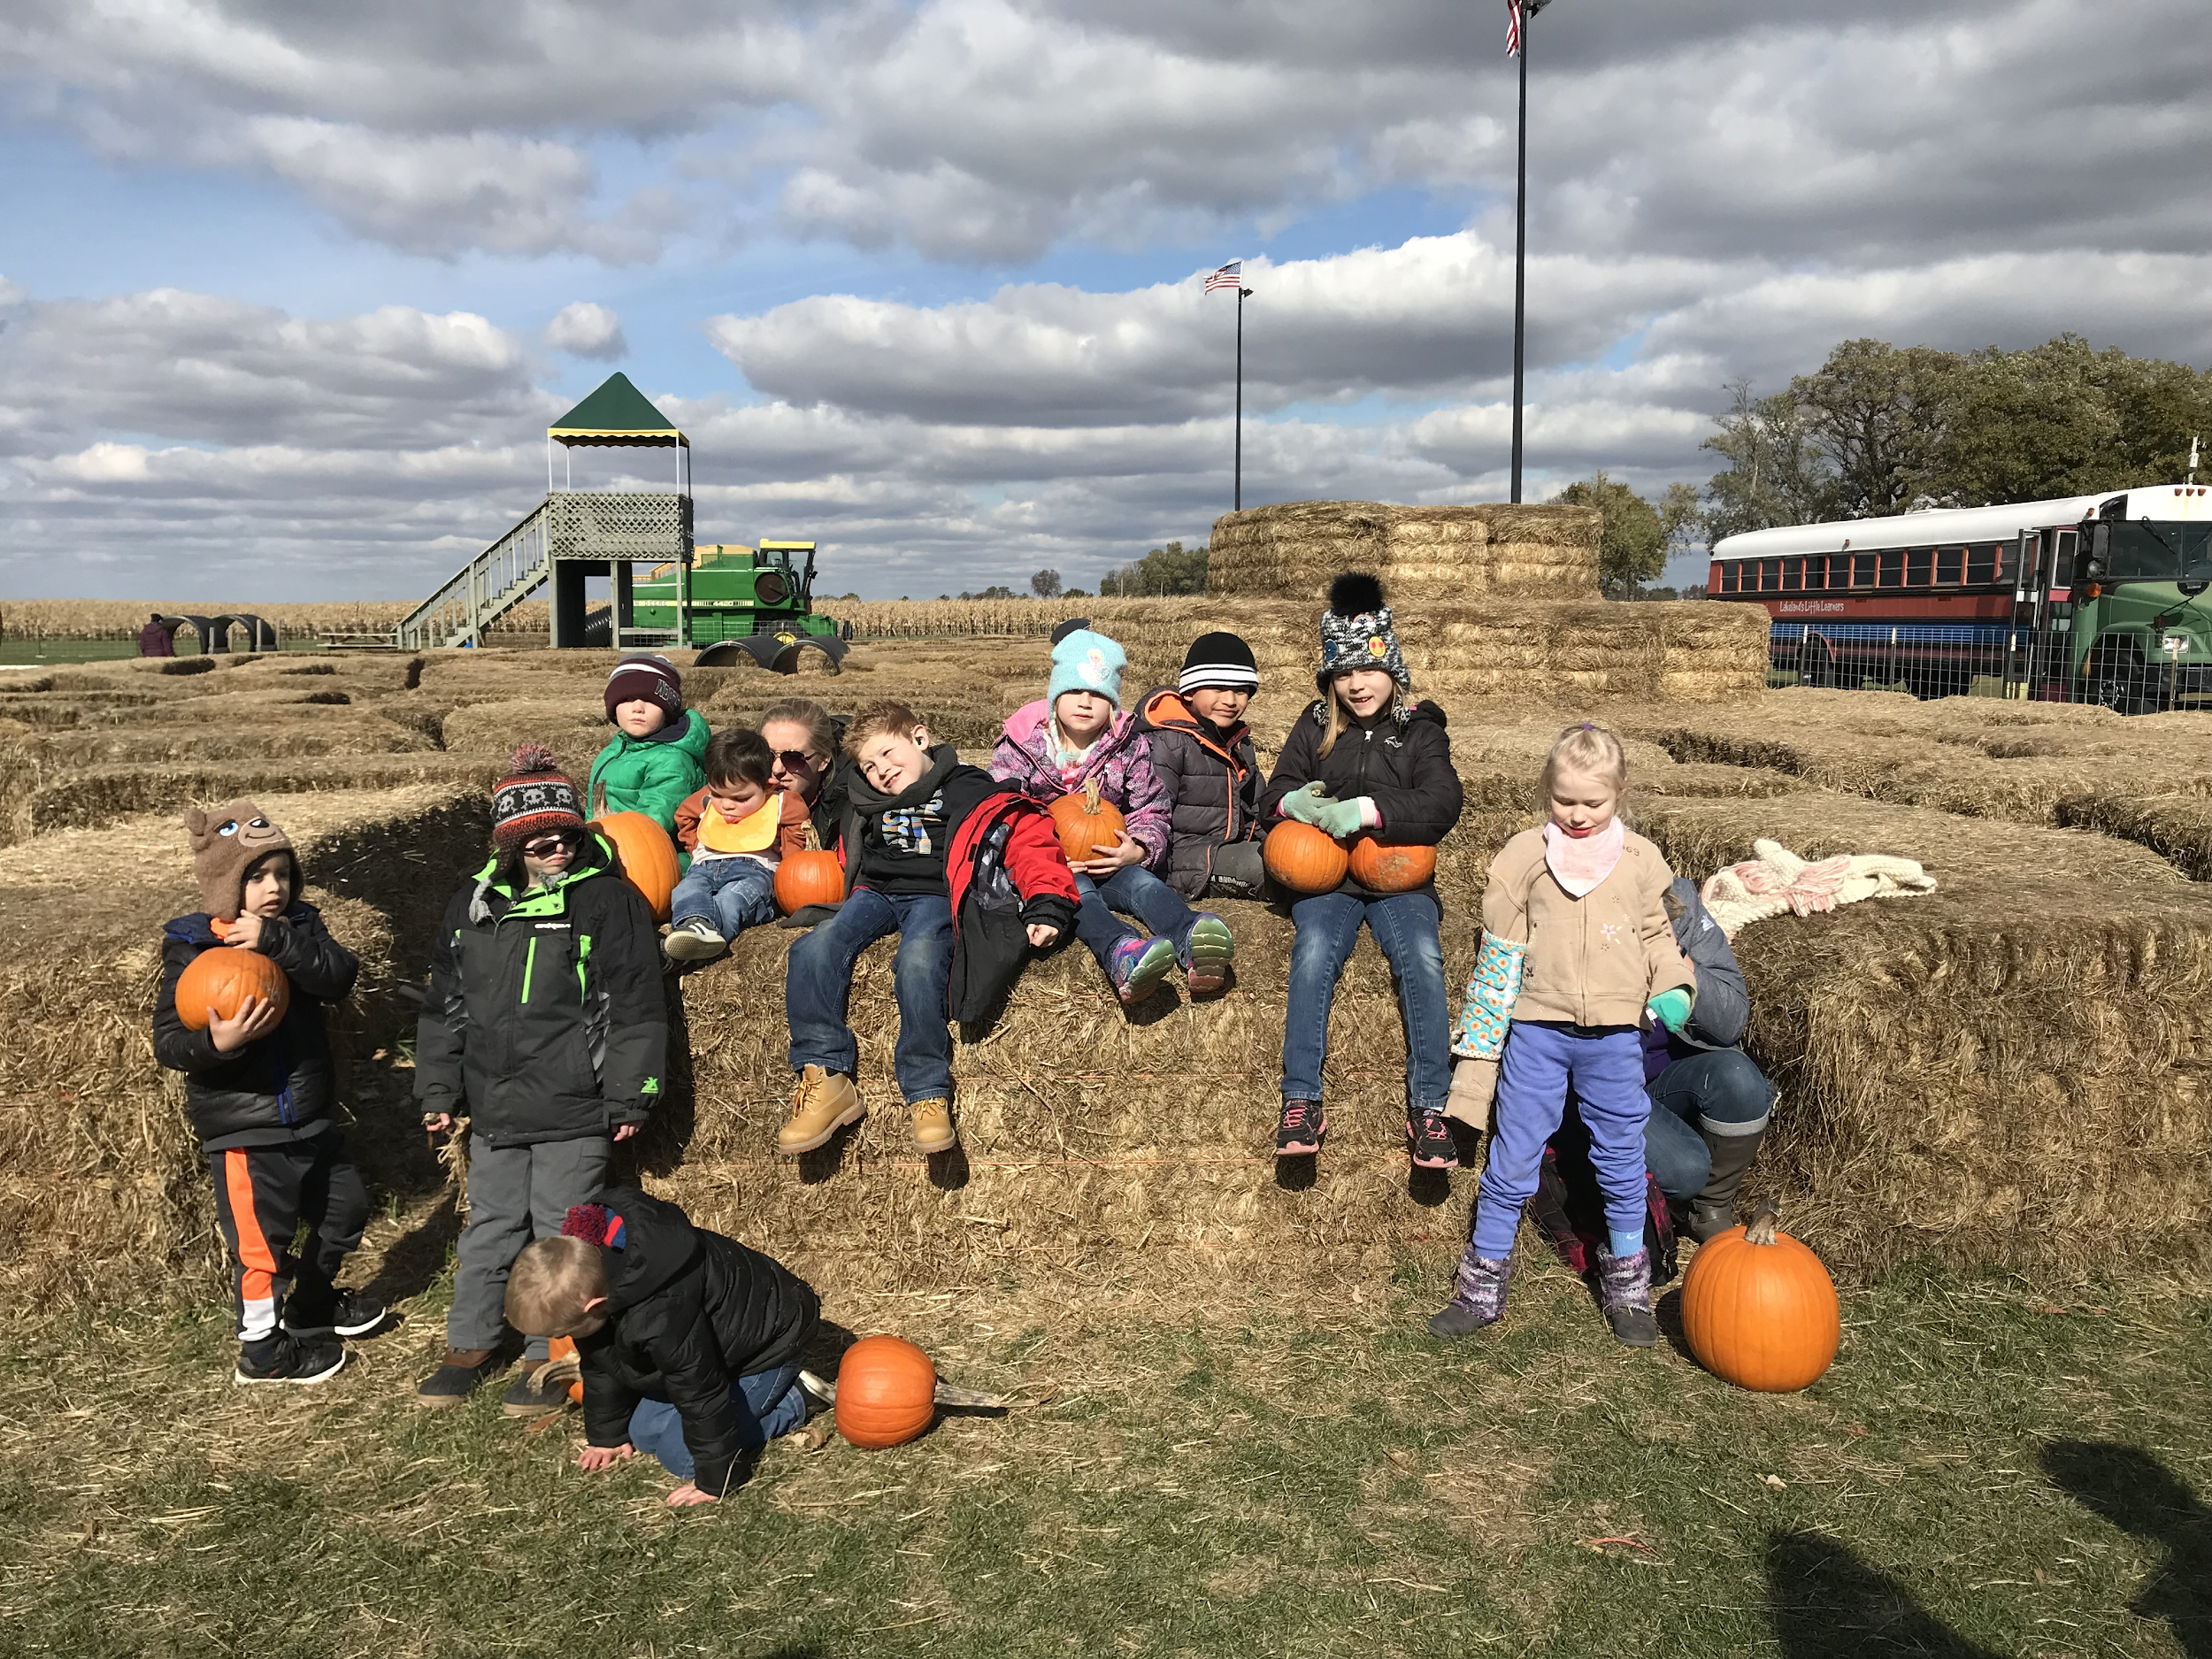 Group of kids holding pumpkins